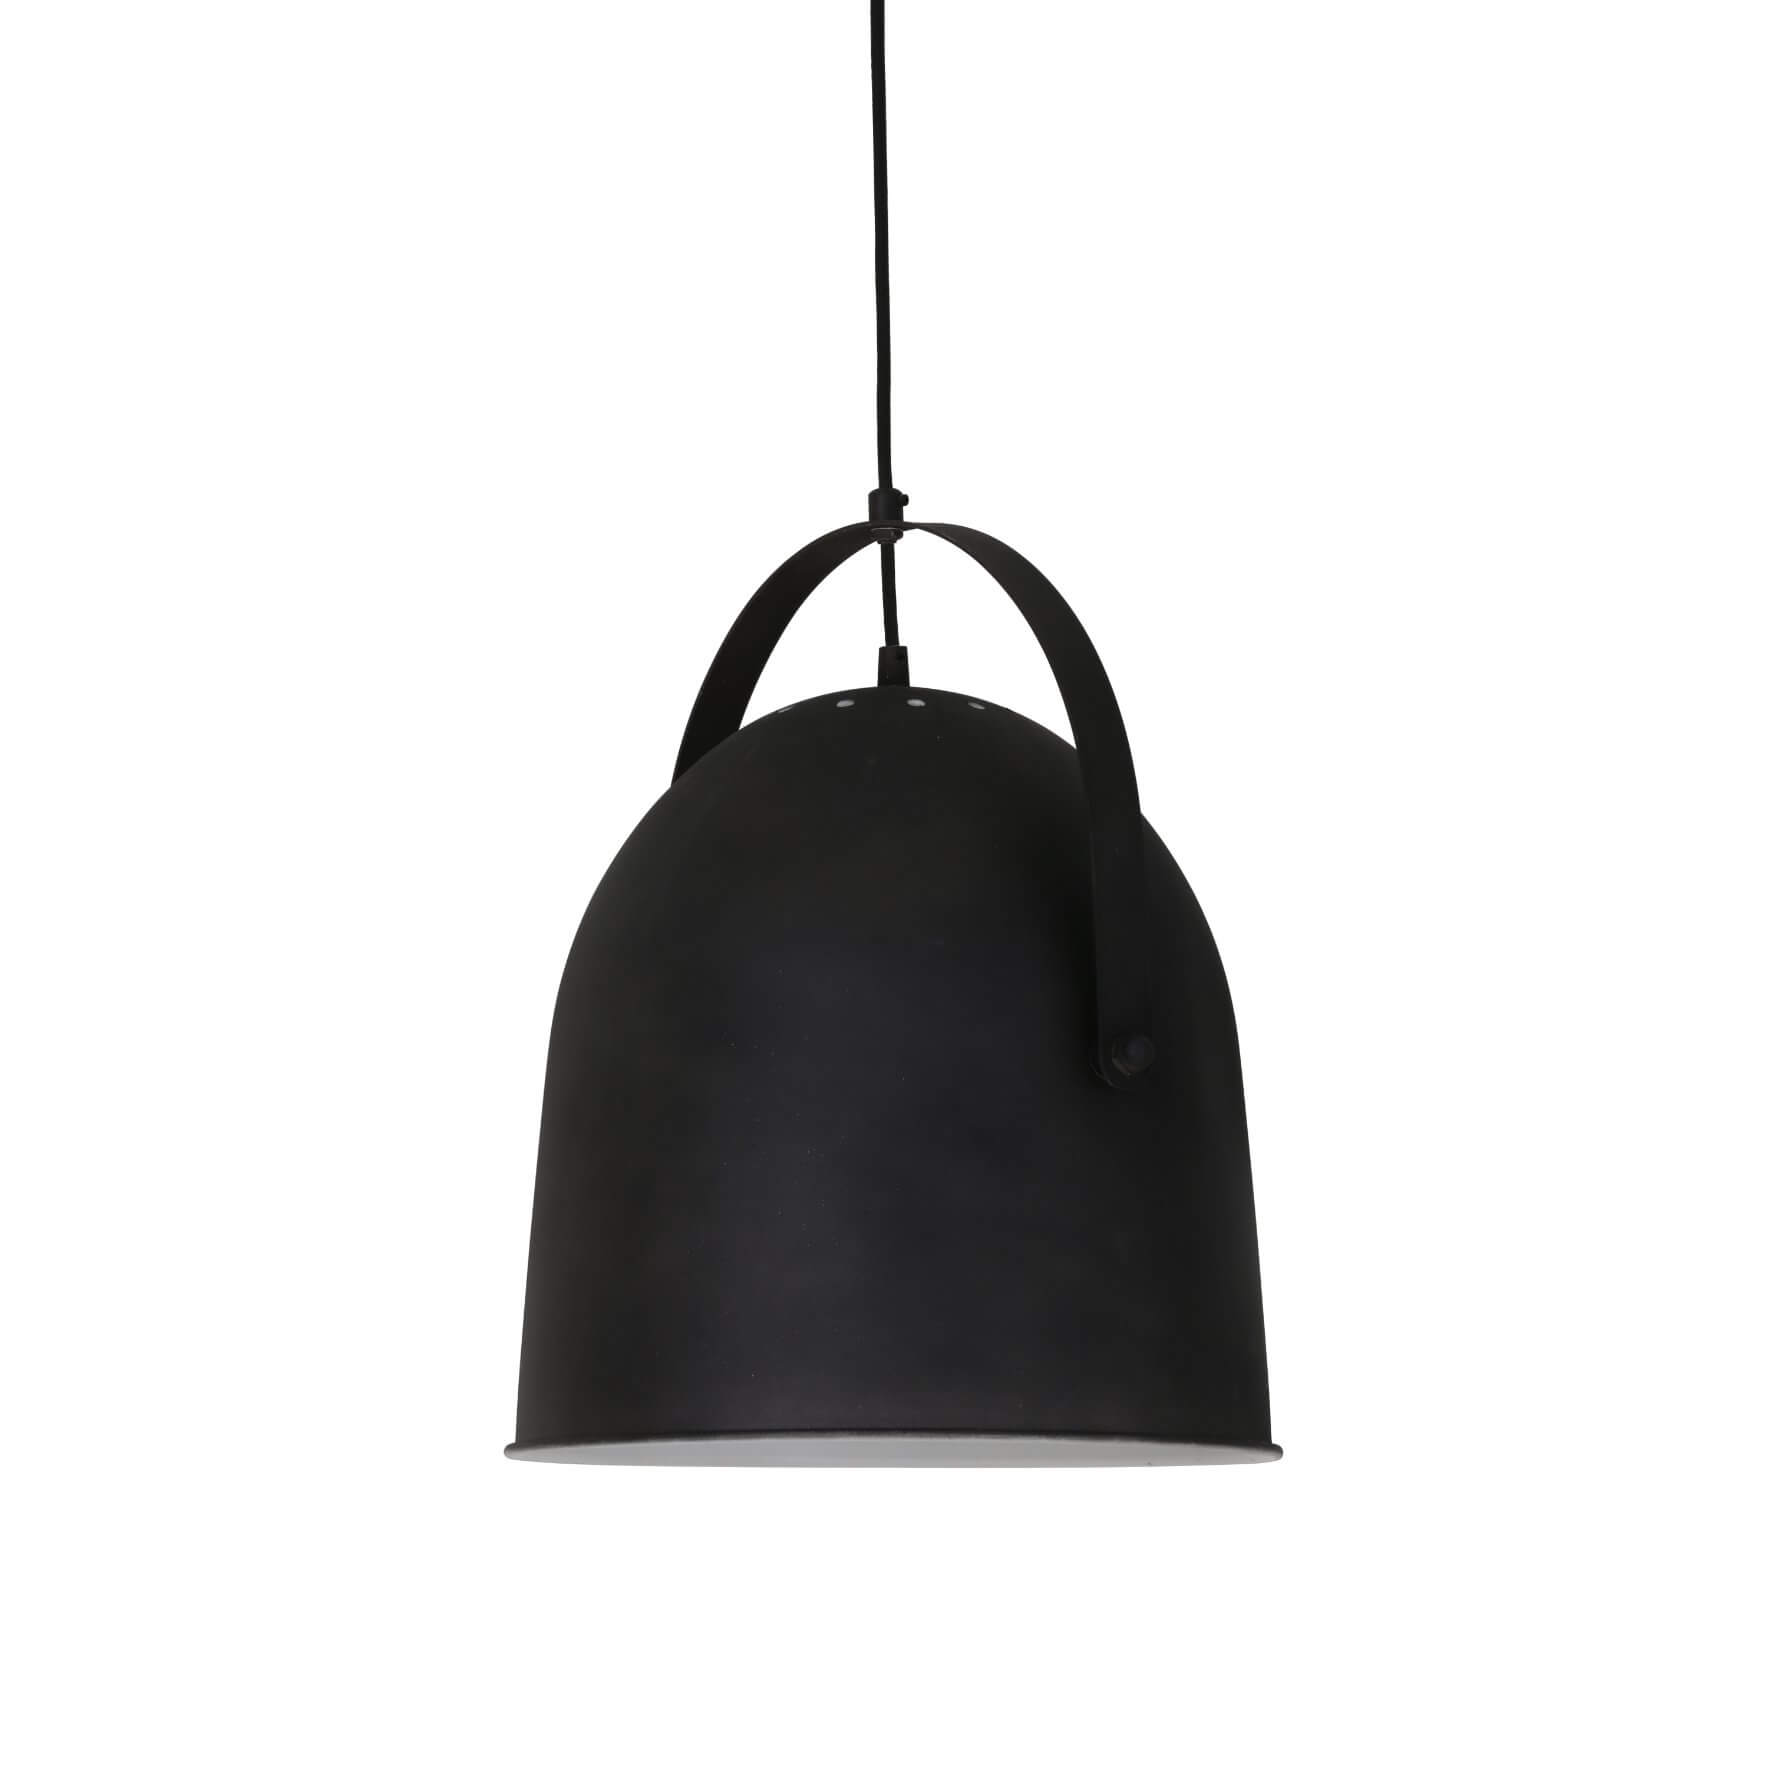 Suspension cloche Walada noire